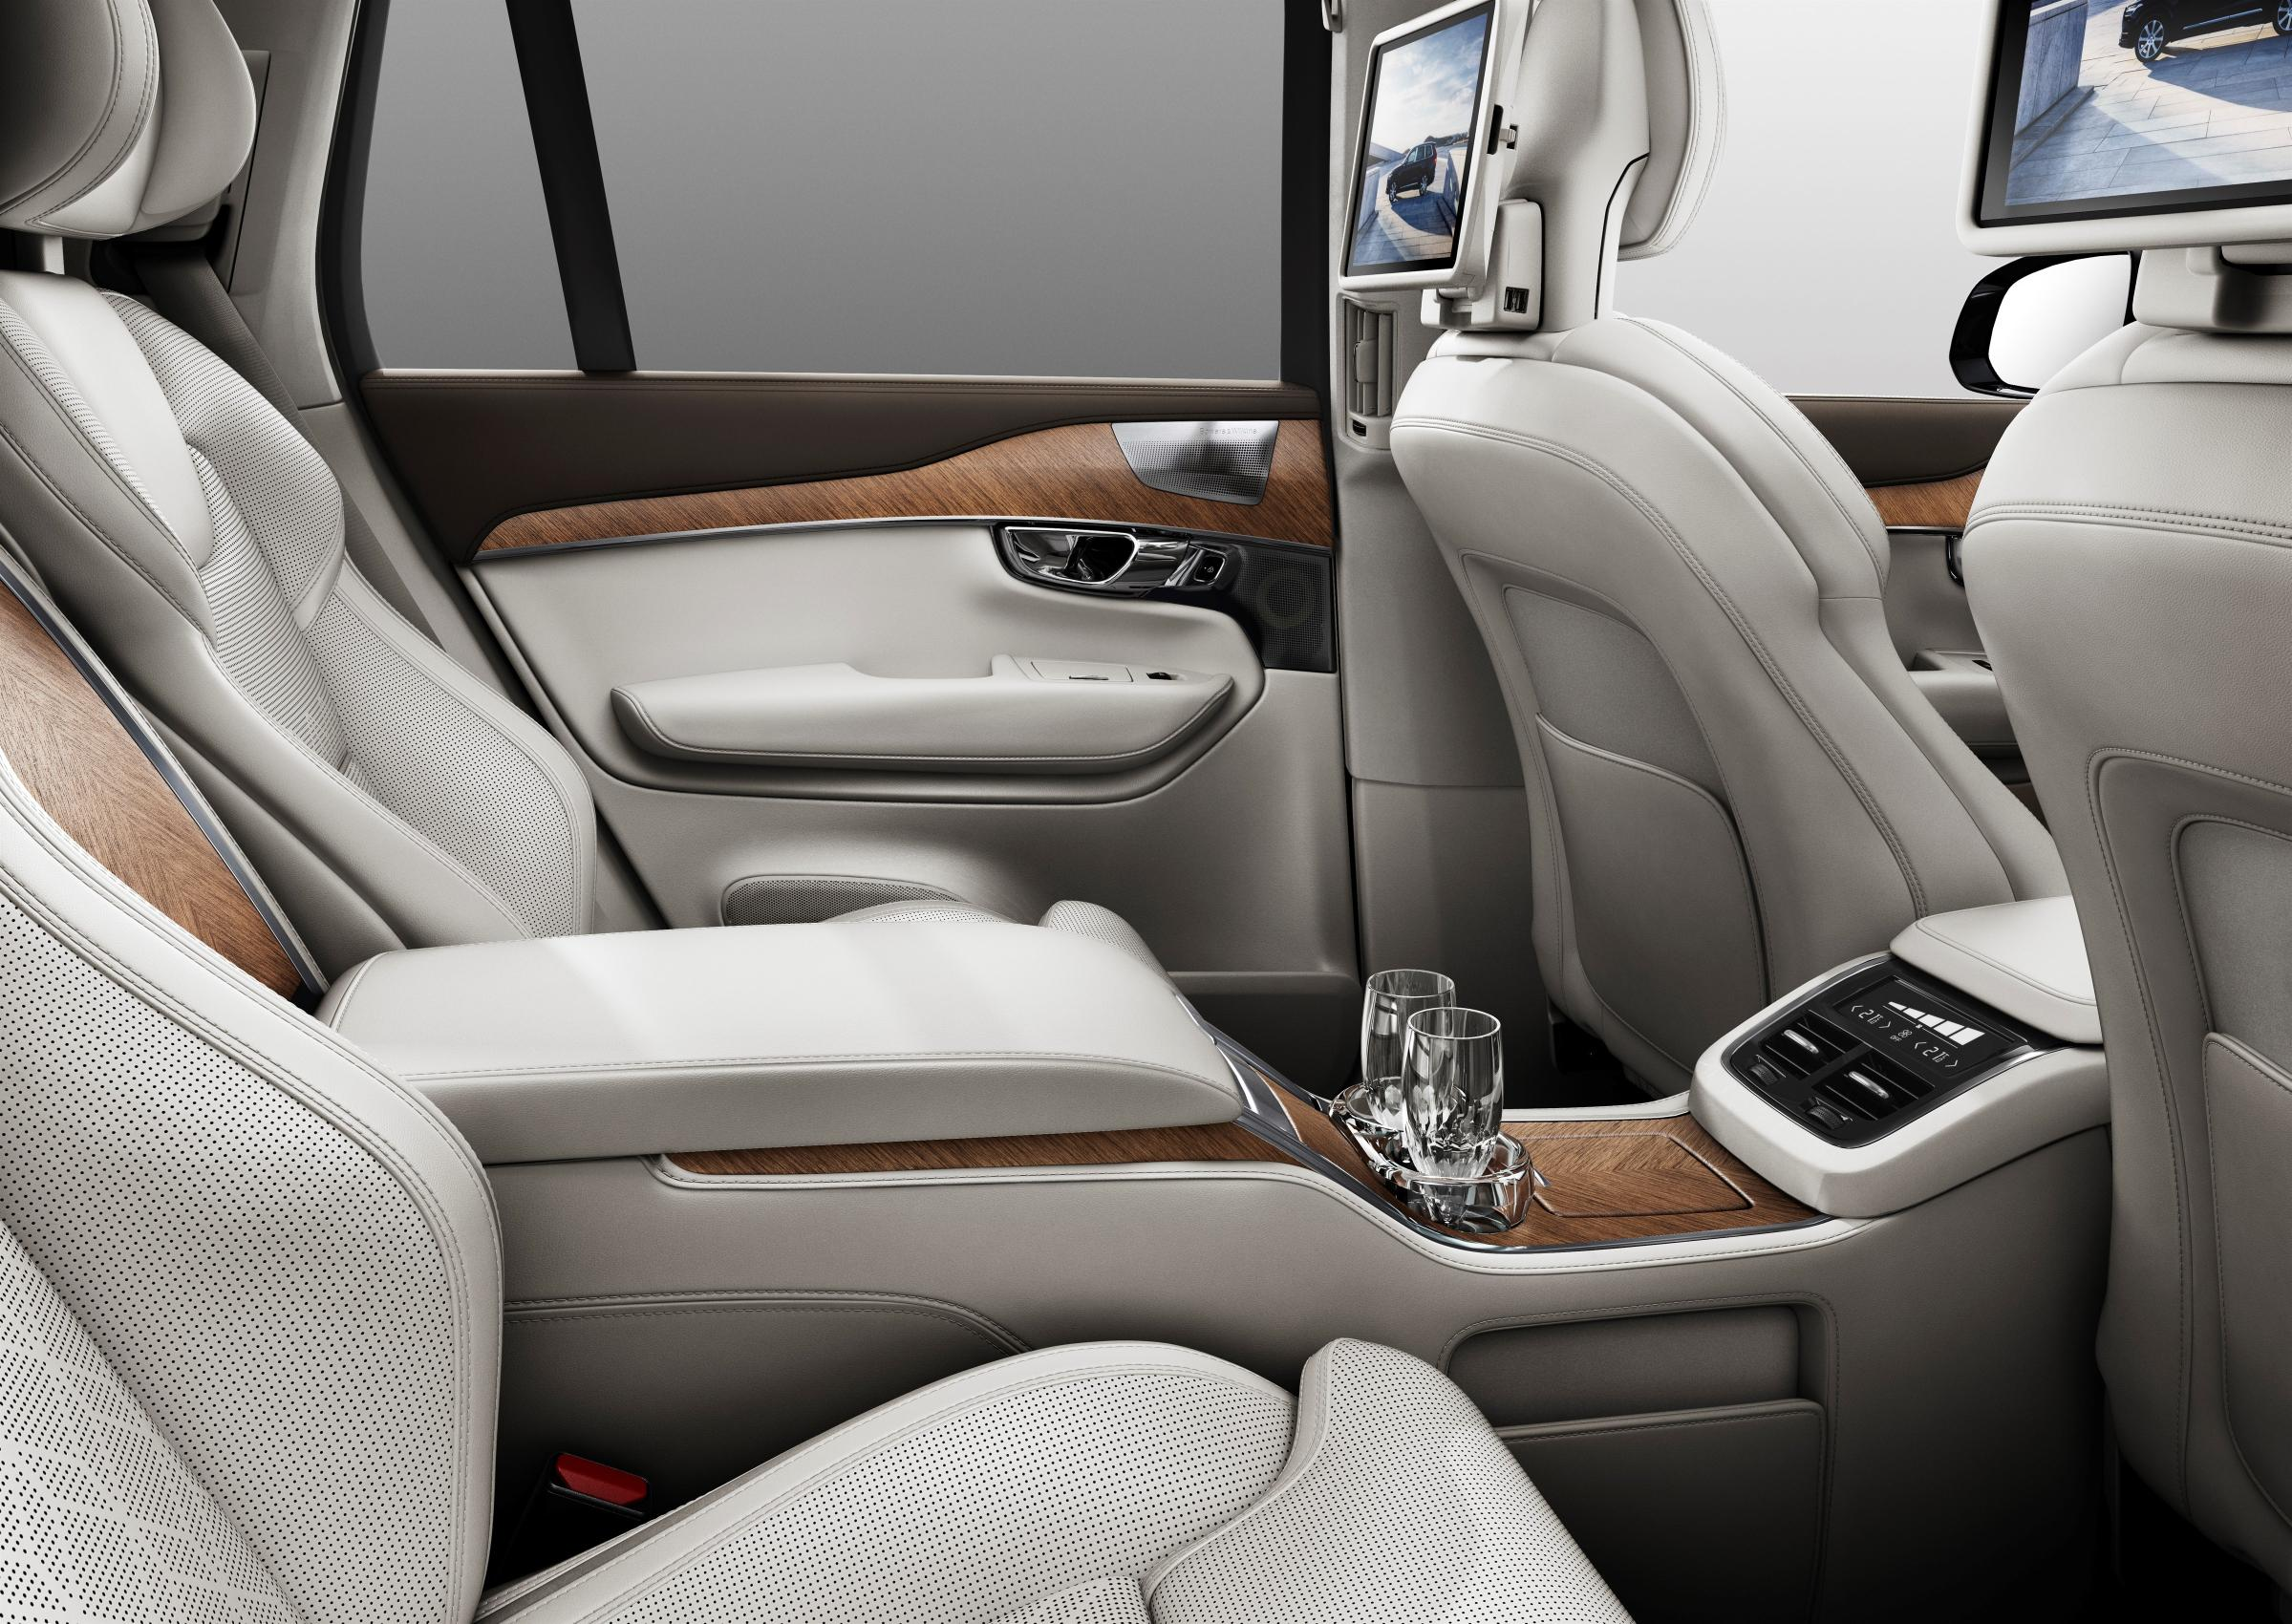 XC90 Volvo - Interior 7 Seater